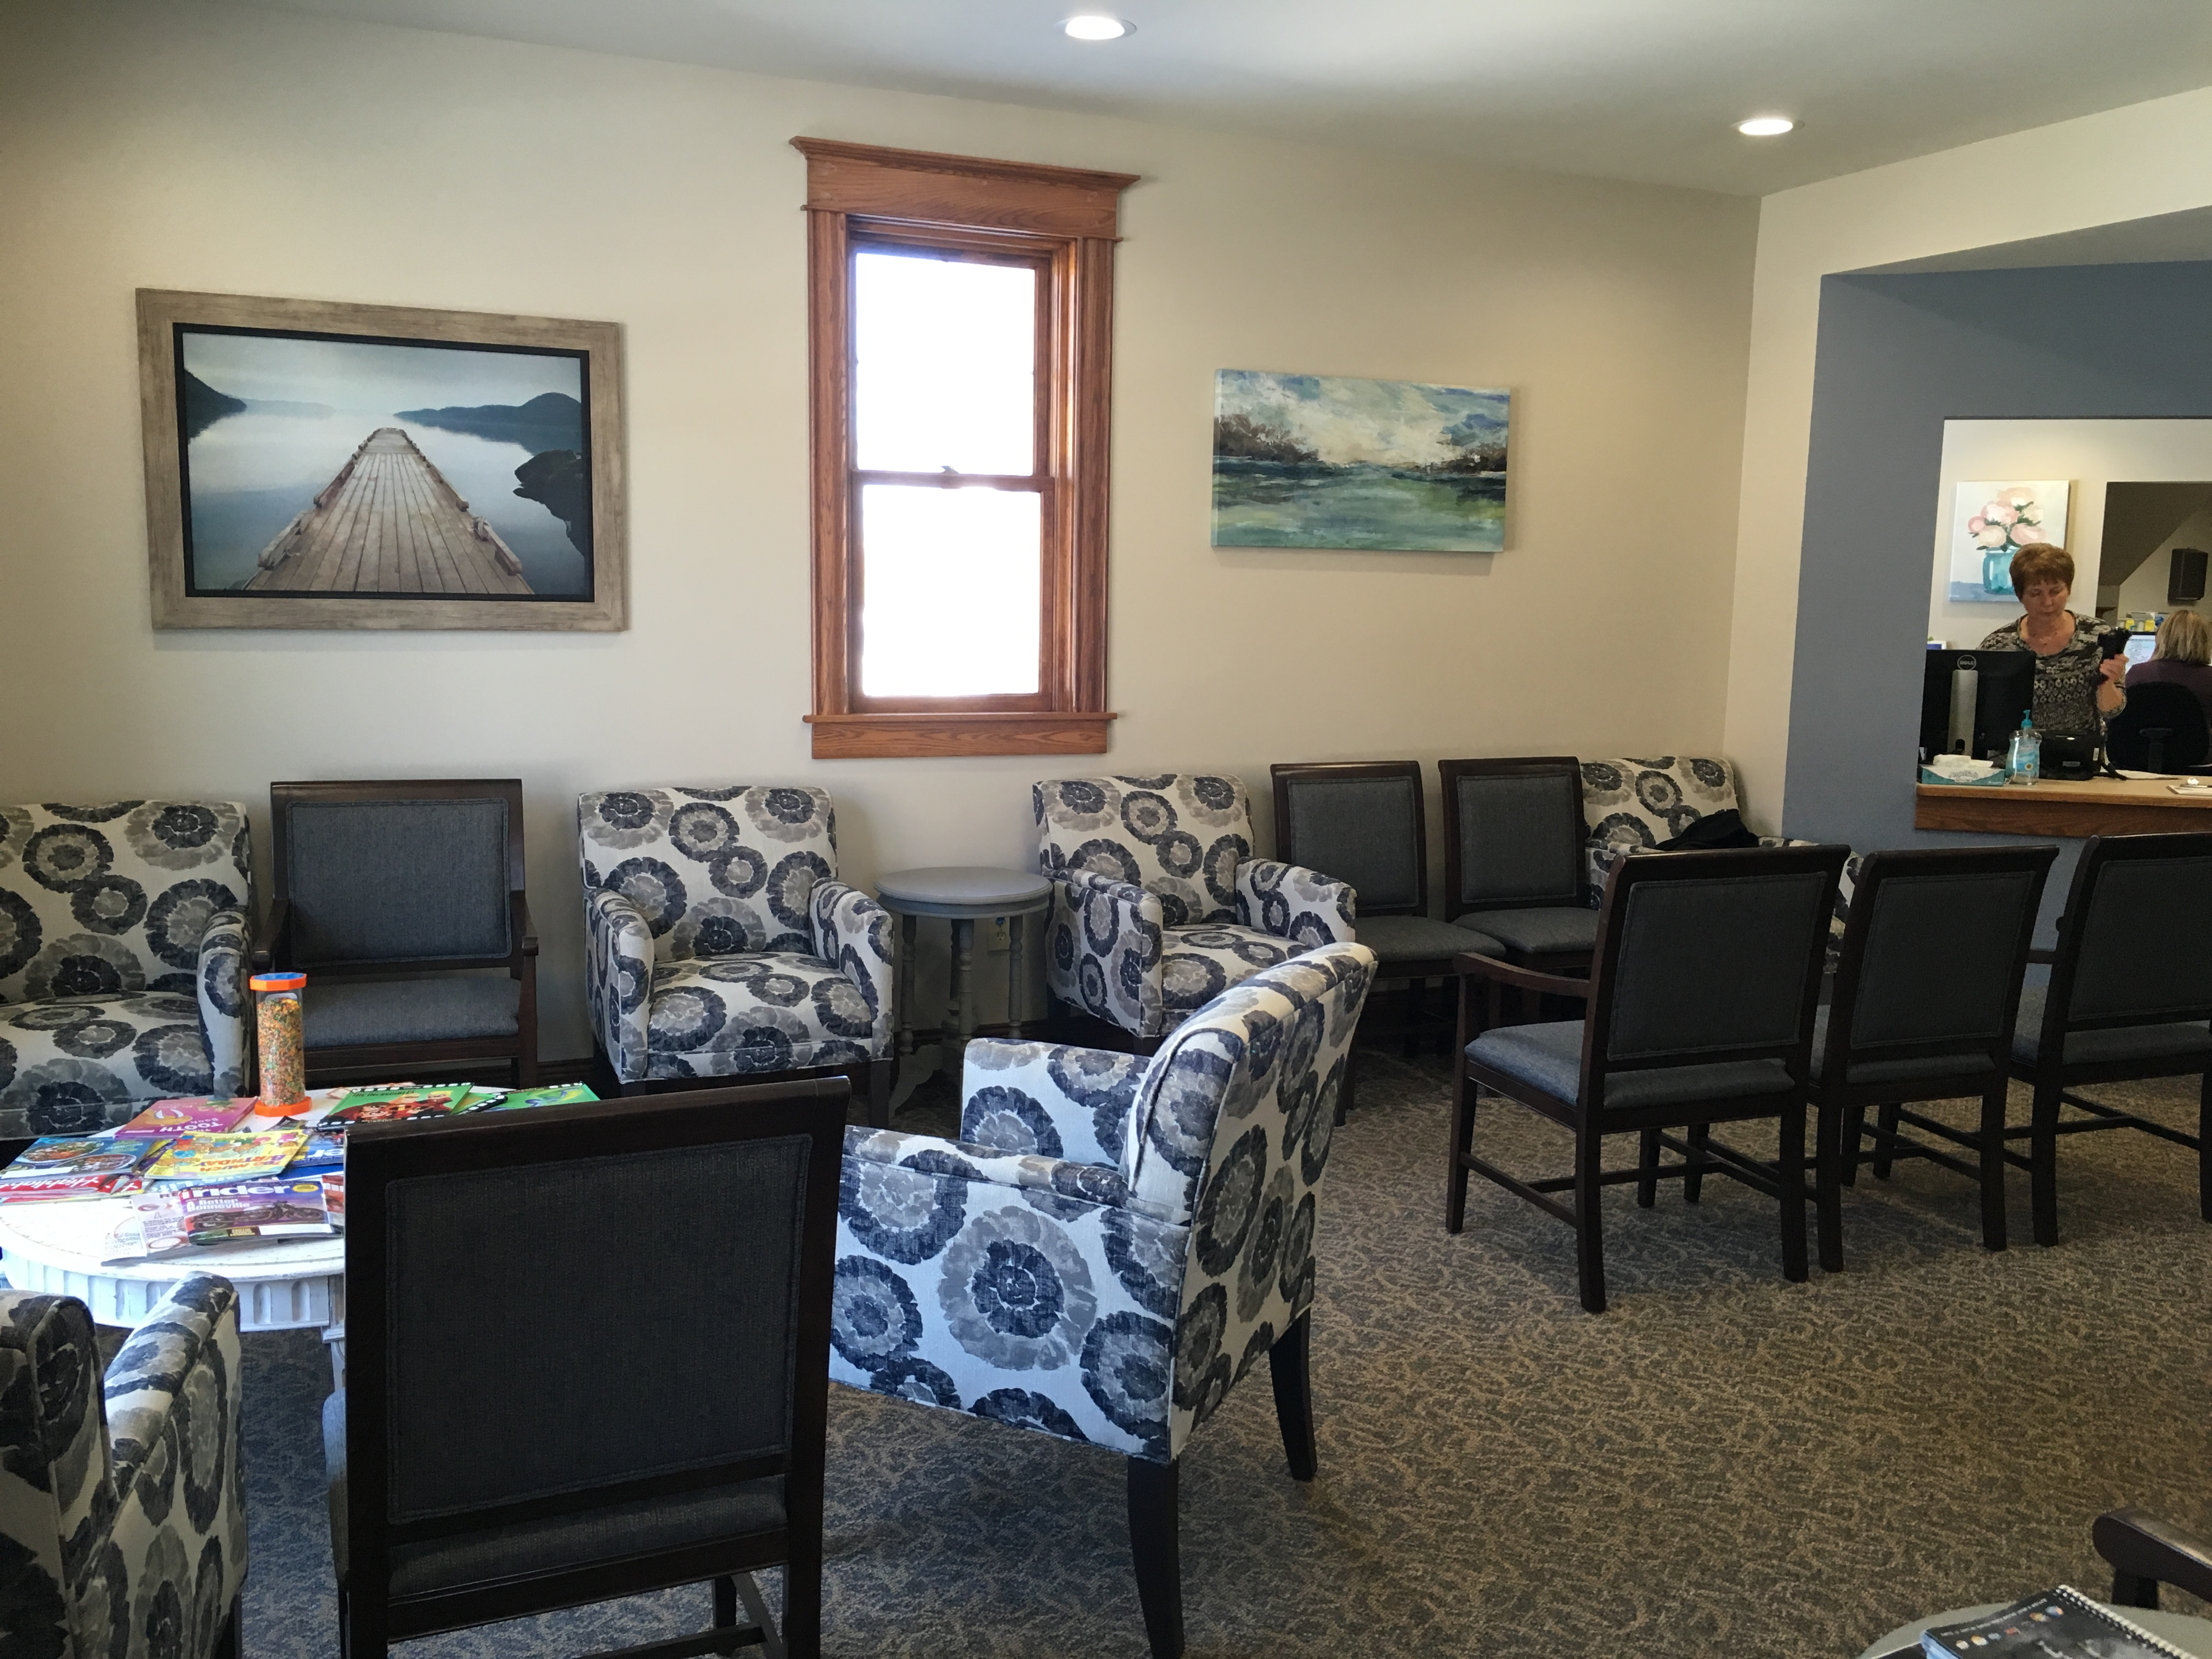 Our waiting room features more seating for patients, a drinking fountain and a new bathroom. Special thanks to Gray's Furniture of Mt. Pleasant and DBI in Lansing for the new furniture.